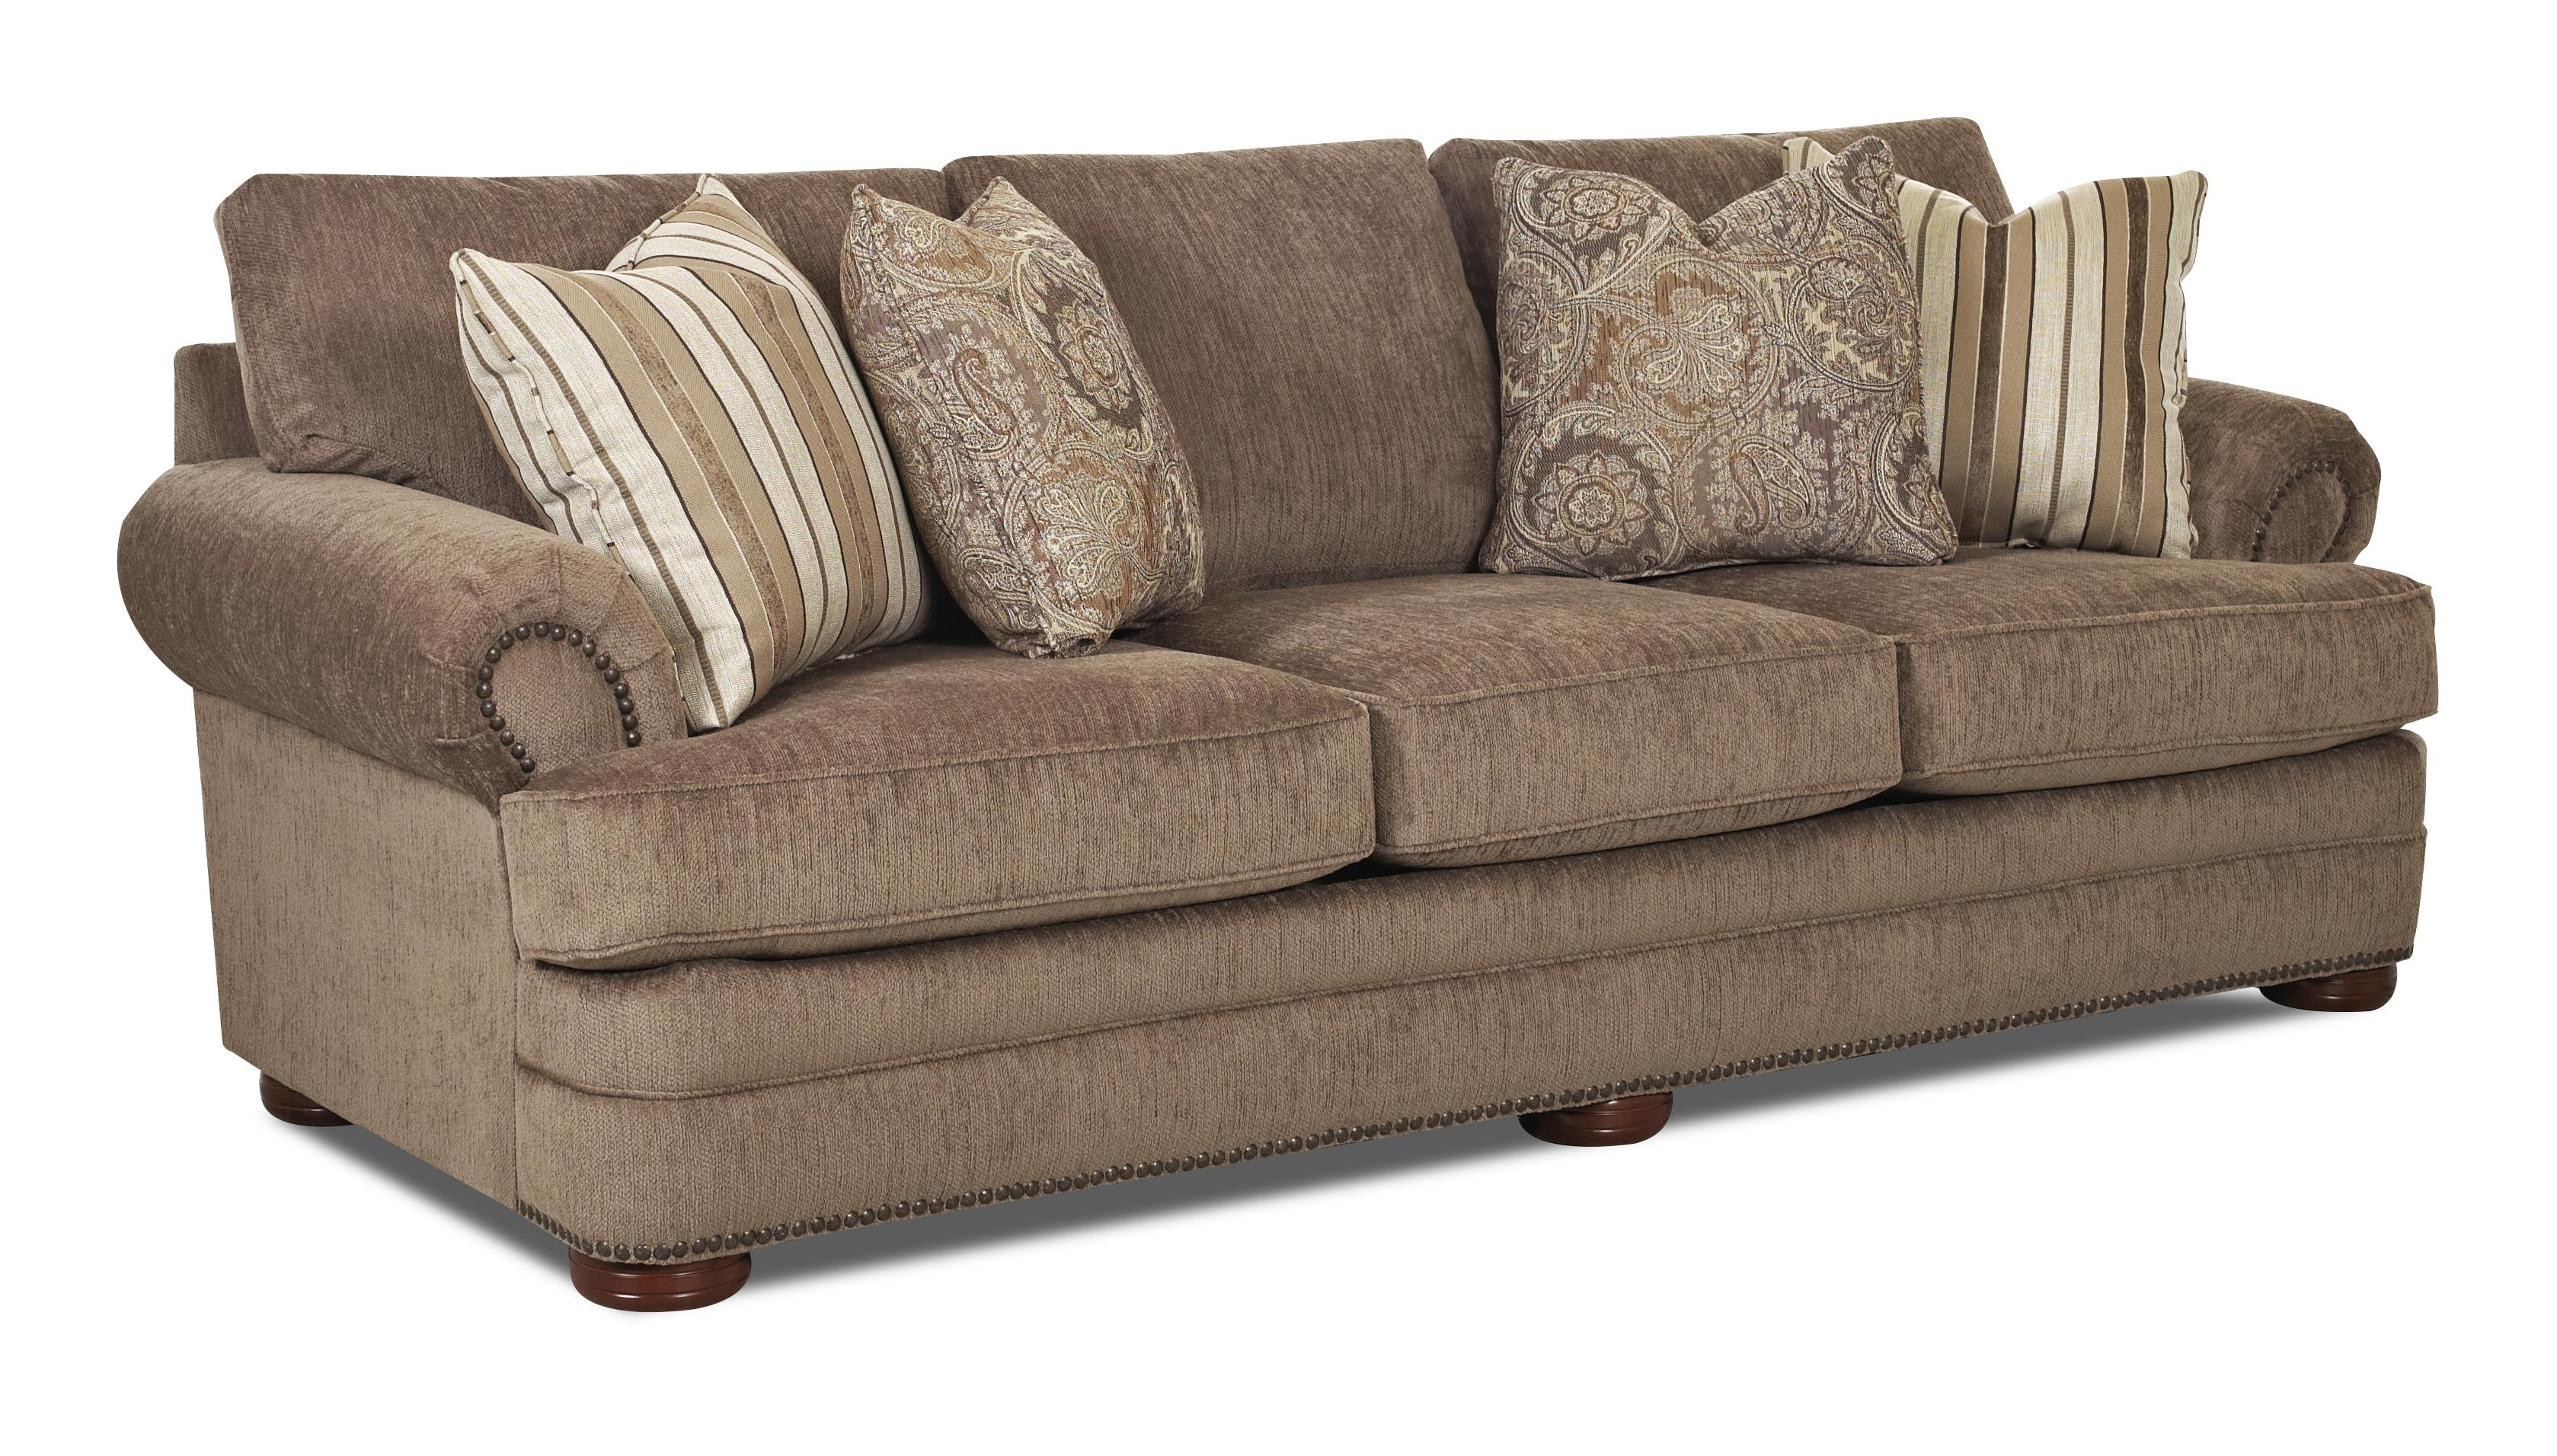 Klaussner Tolbert K90810 S Traditional Sofa With Rolled